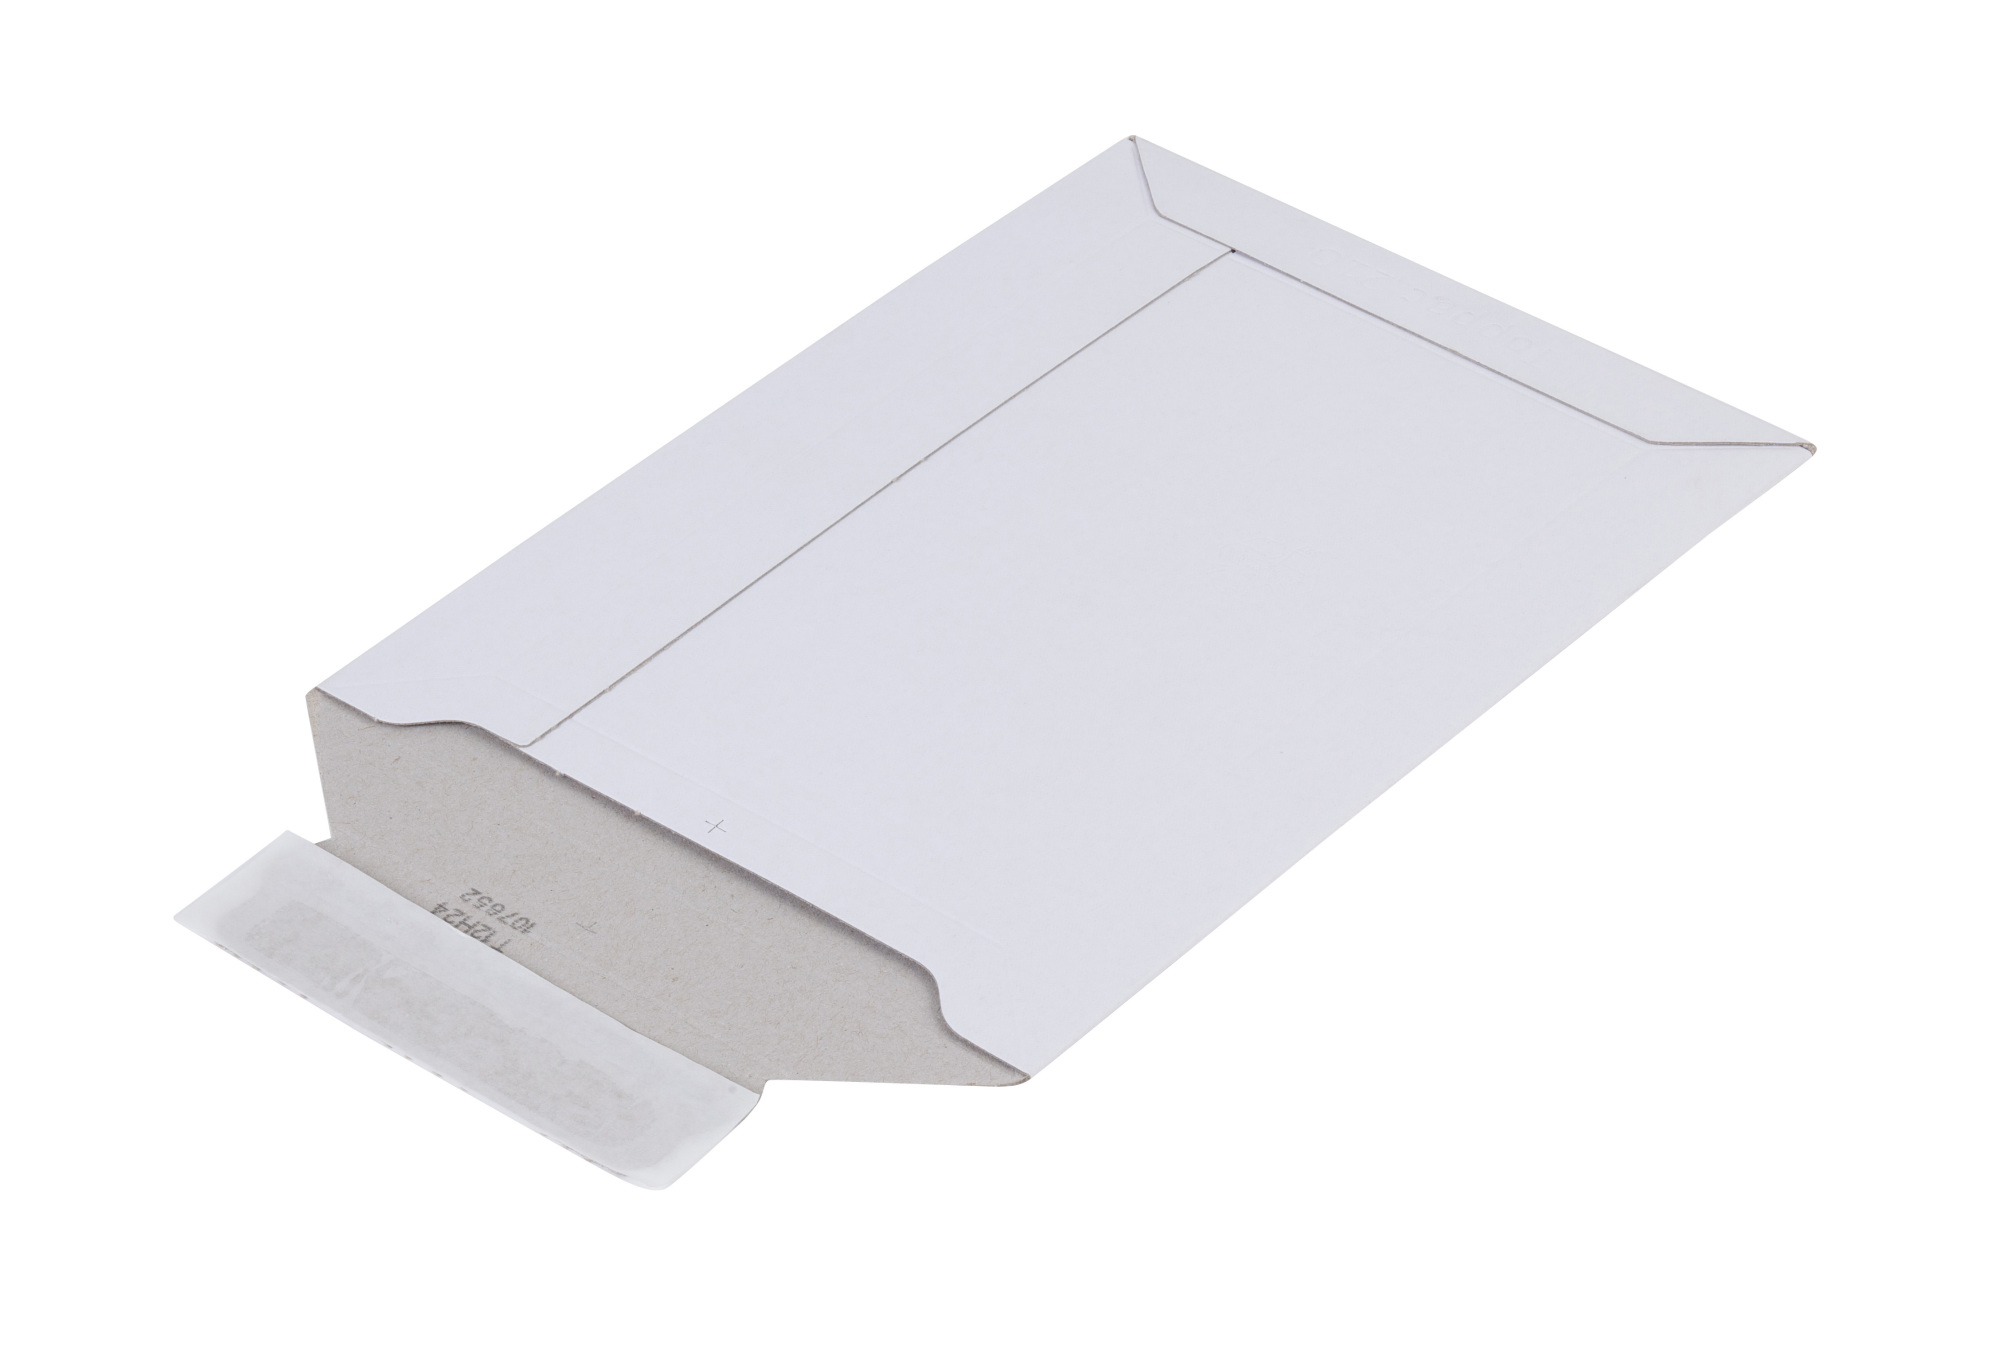 215 x 270mm Toppac White Solid Board Mailing Envelopes